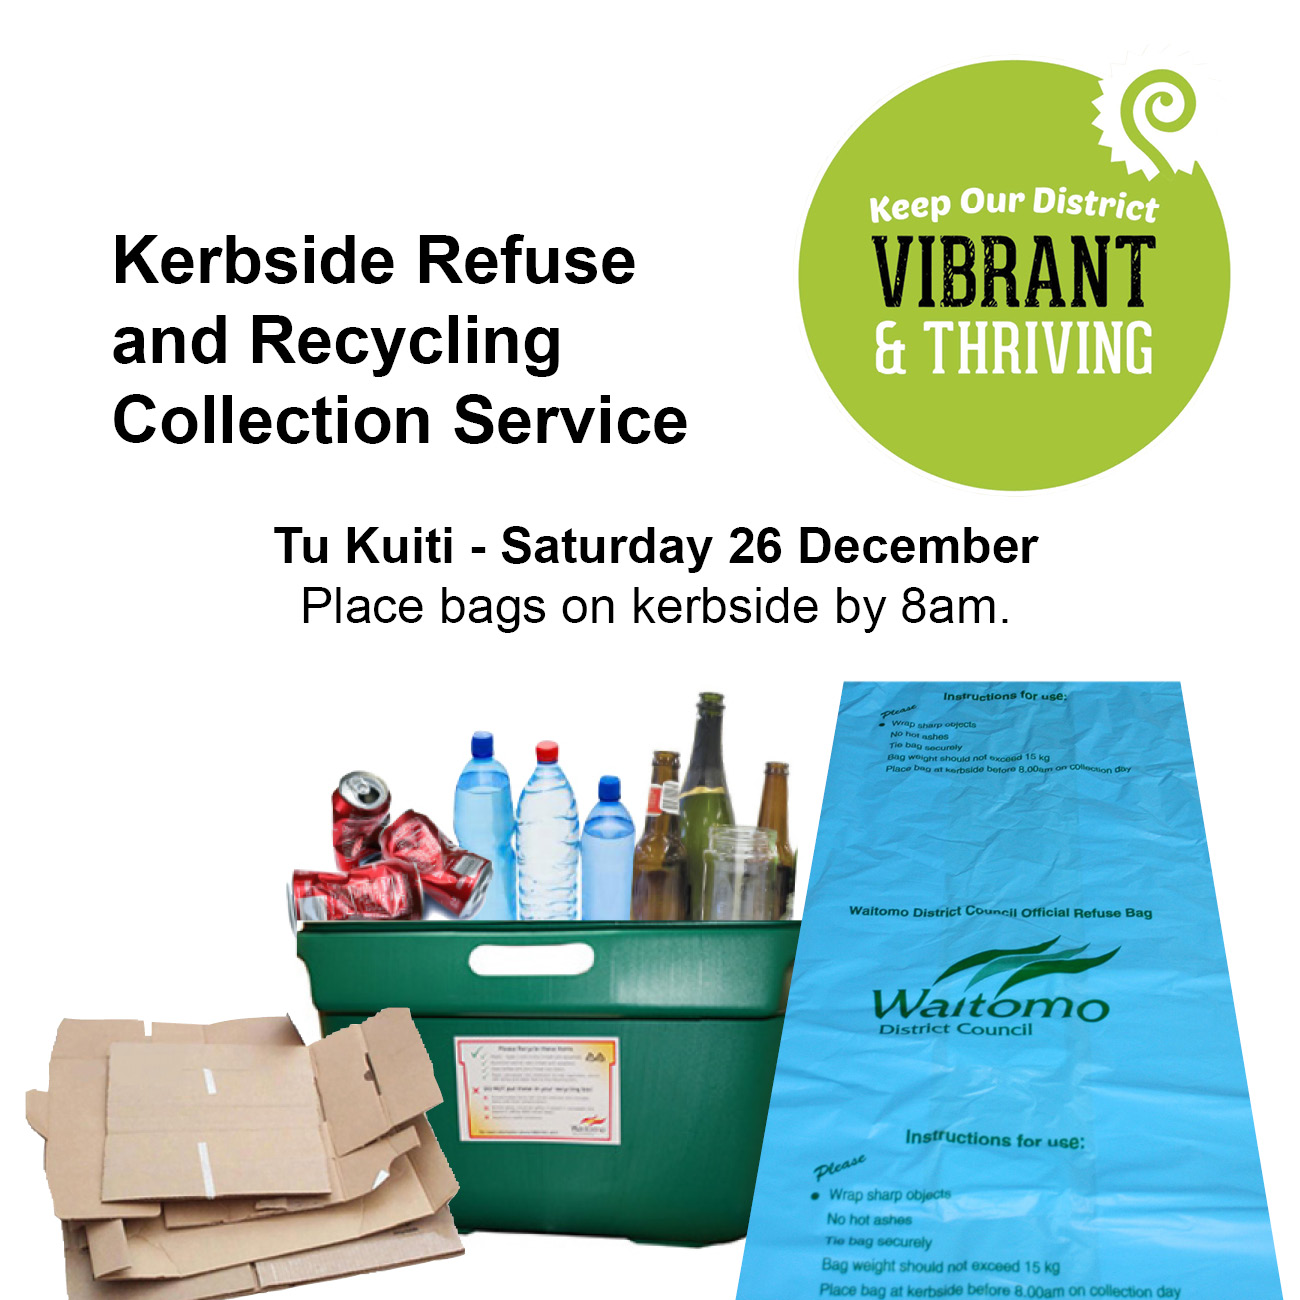 Kerbside collection service Te Kuiti